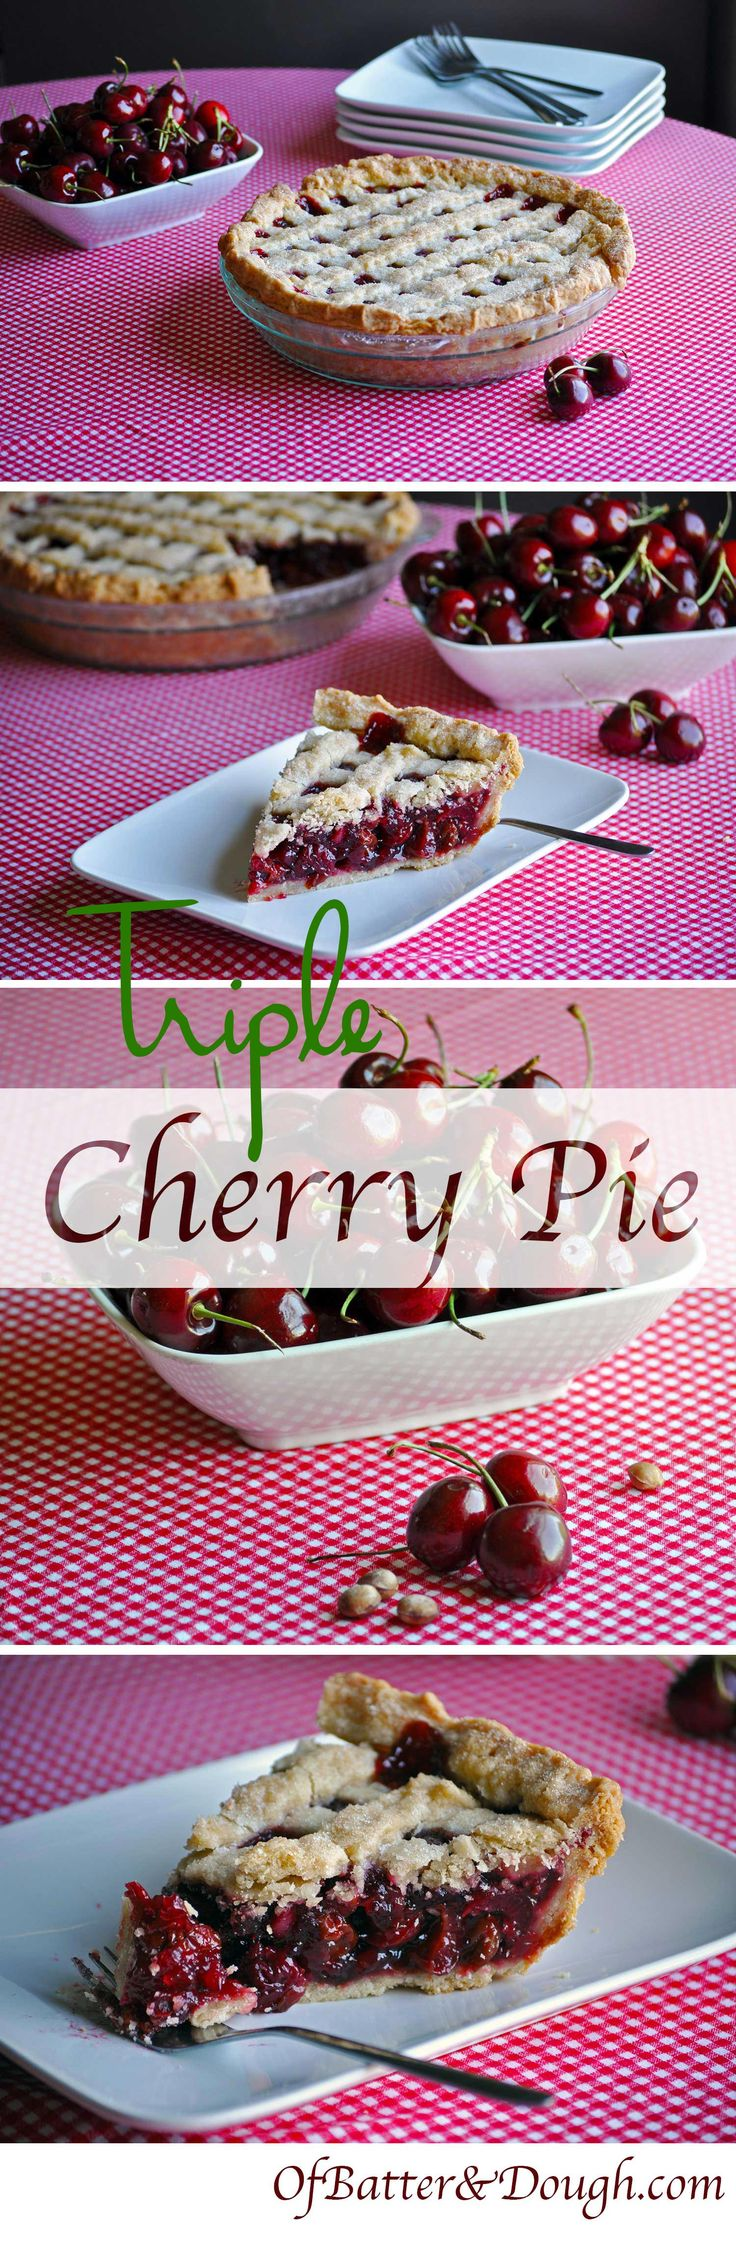 Tripple cherry pie recipe. This cherry pie recipe combines sour cherries, sweet cherries and dried cherries for a complex, richly cherry flavor that I love. I think you will too!